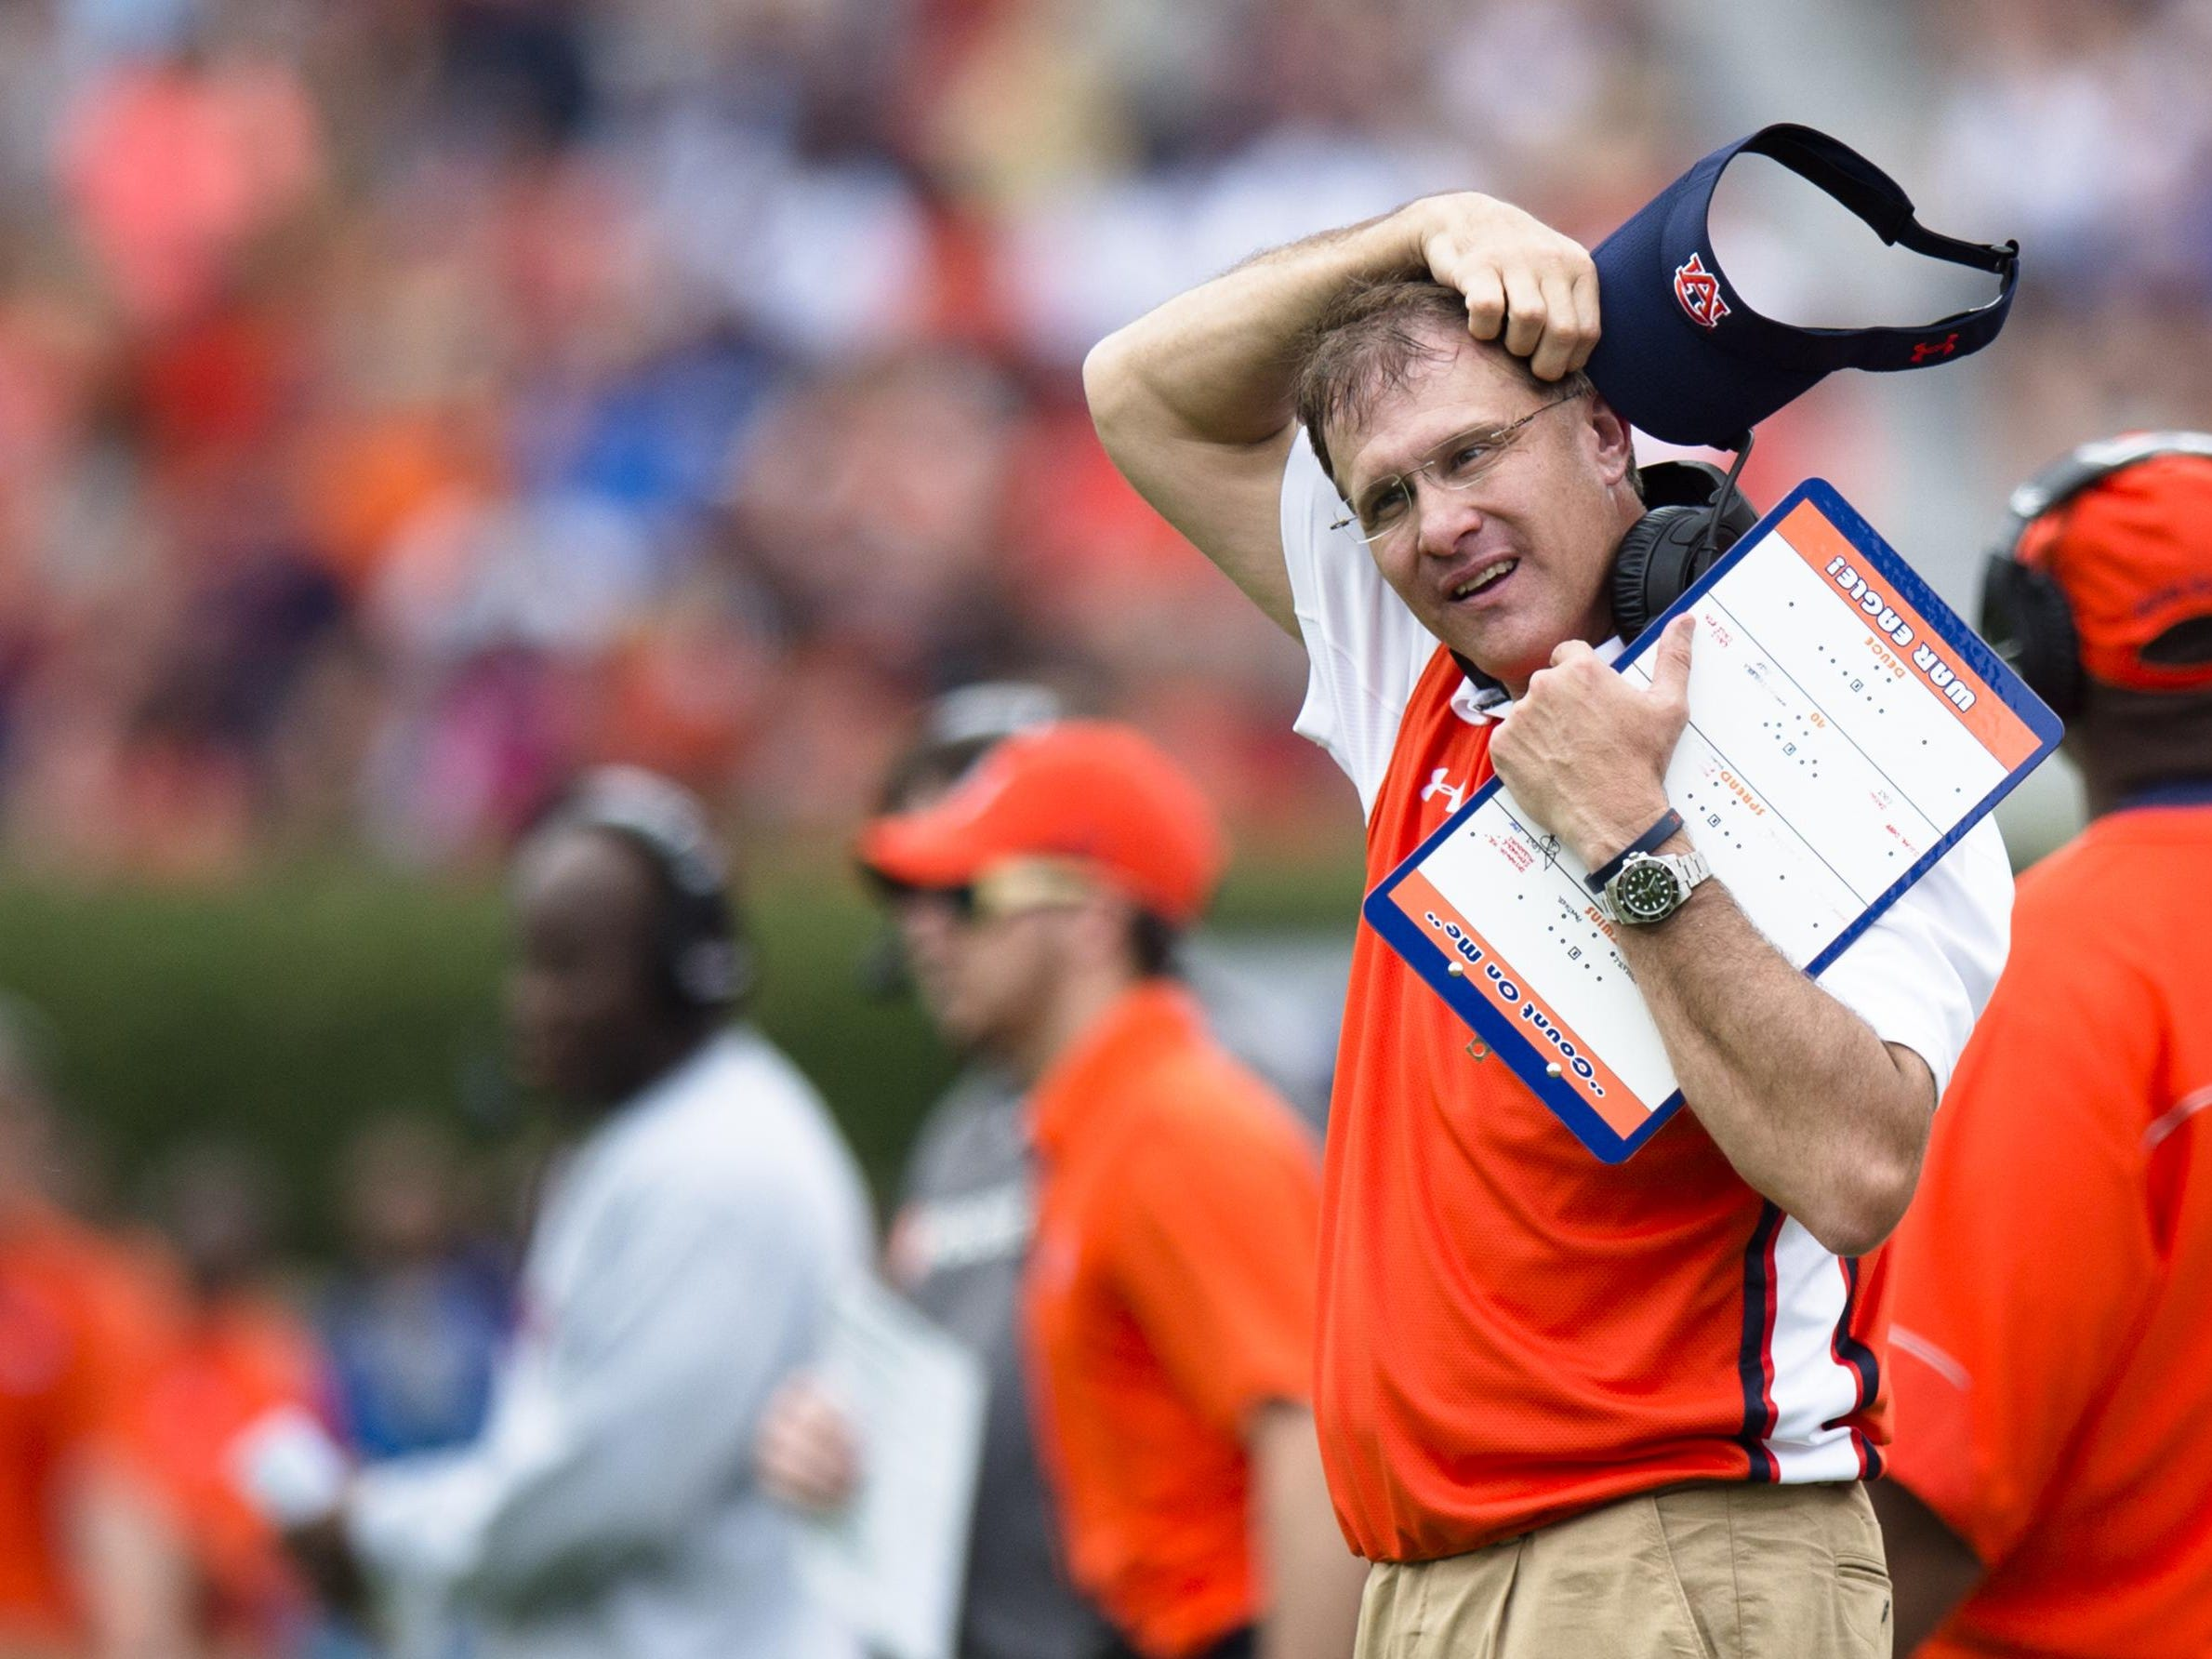 Auburn Tigers head coach Gus Malzahn reacts to Auburn Tigers defensive back Blake Countess being ejected during the first half against Jacksonville State on Saturday at Jordan-Hare Stadium.